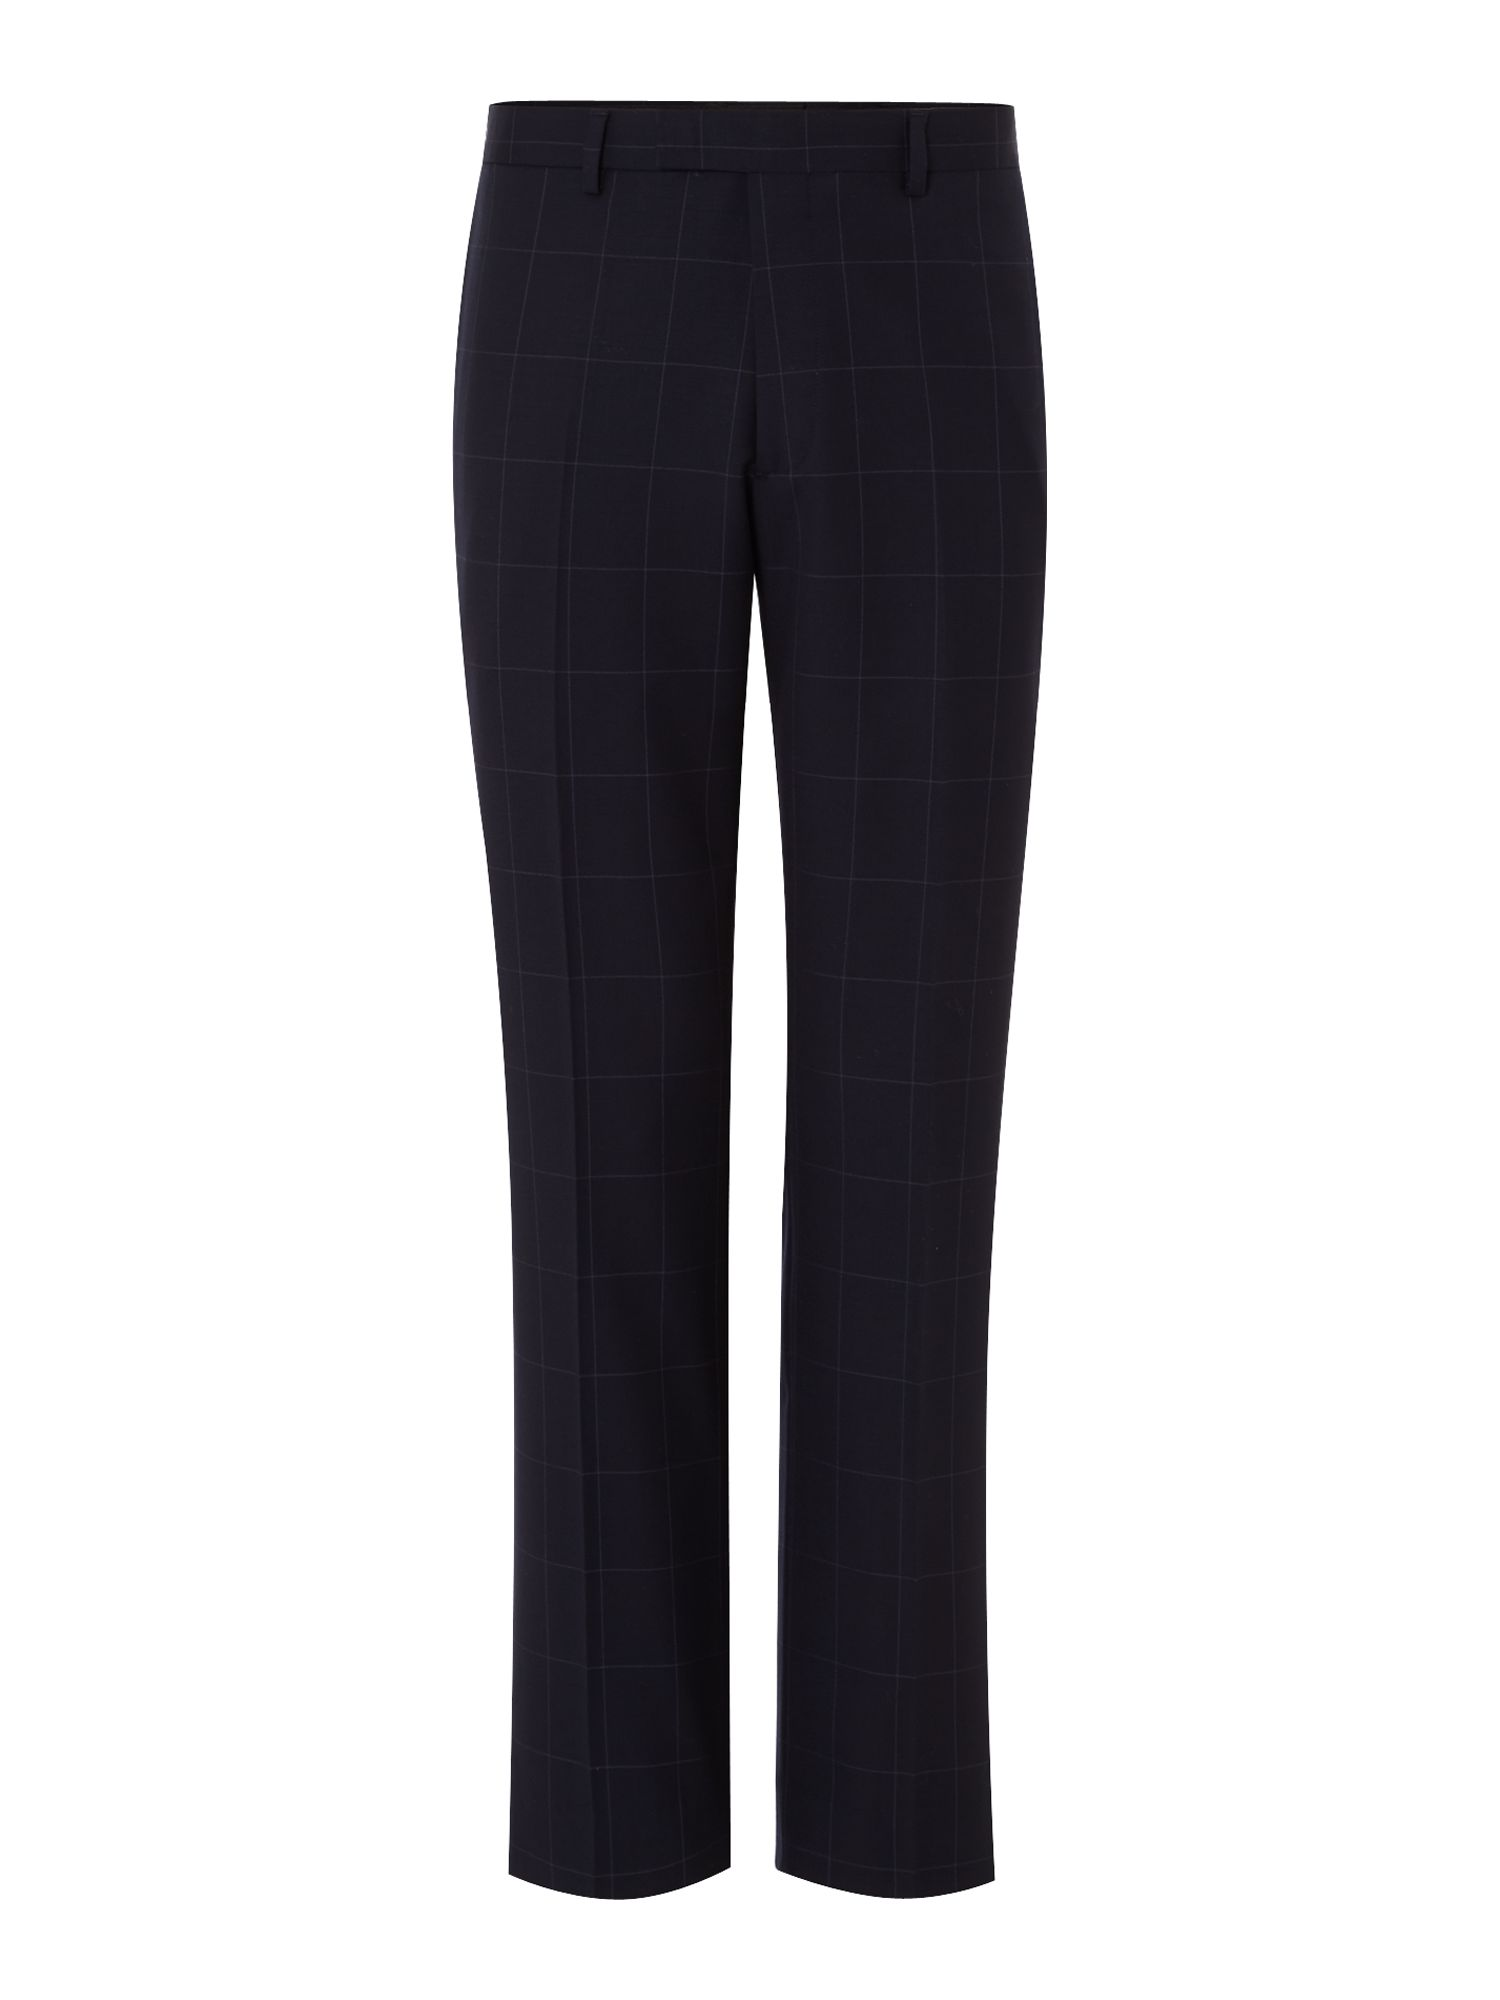 Derwent Windowpane Twill Suit Trousers